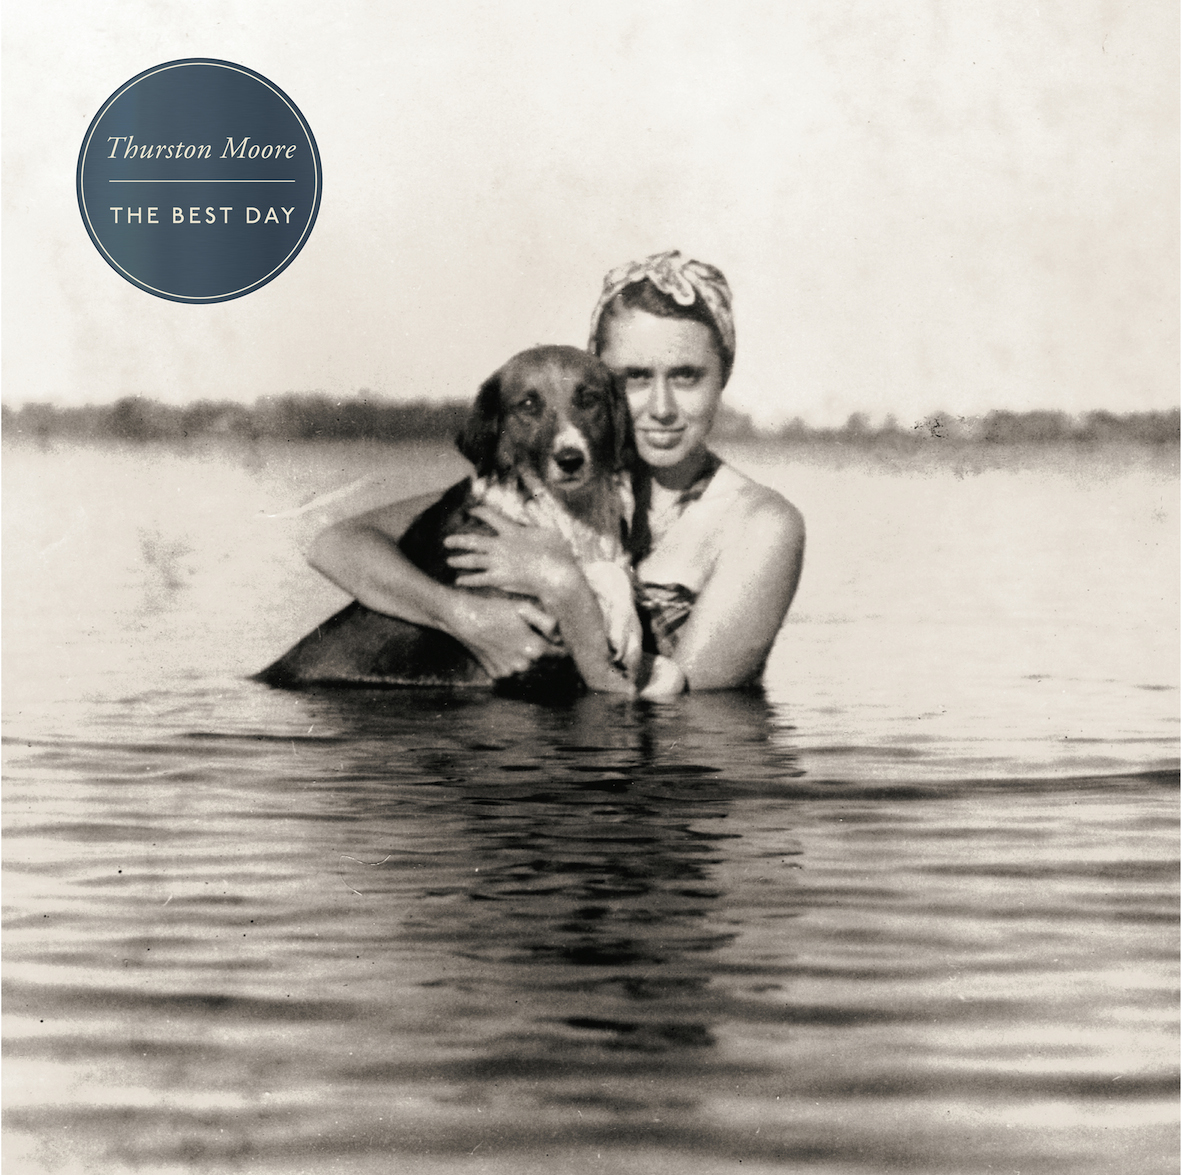 The best day - Thurston Moore